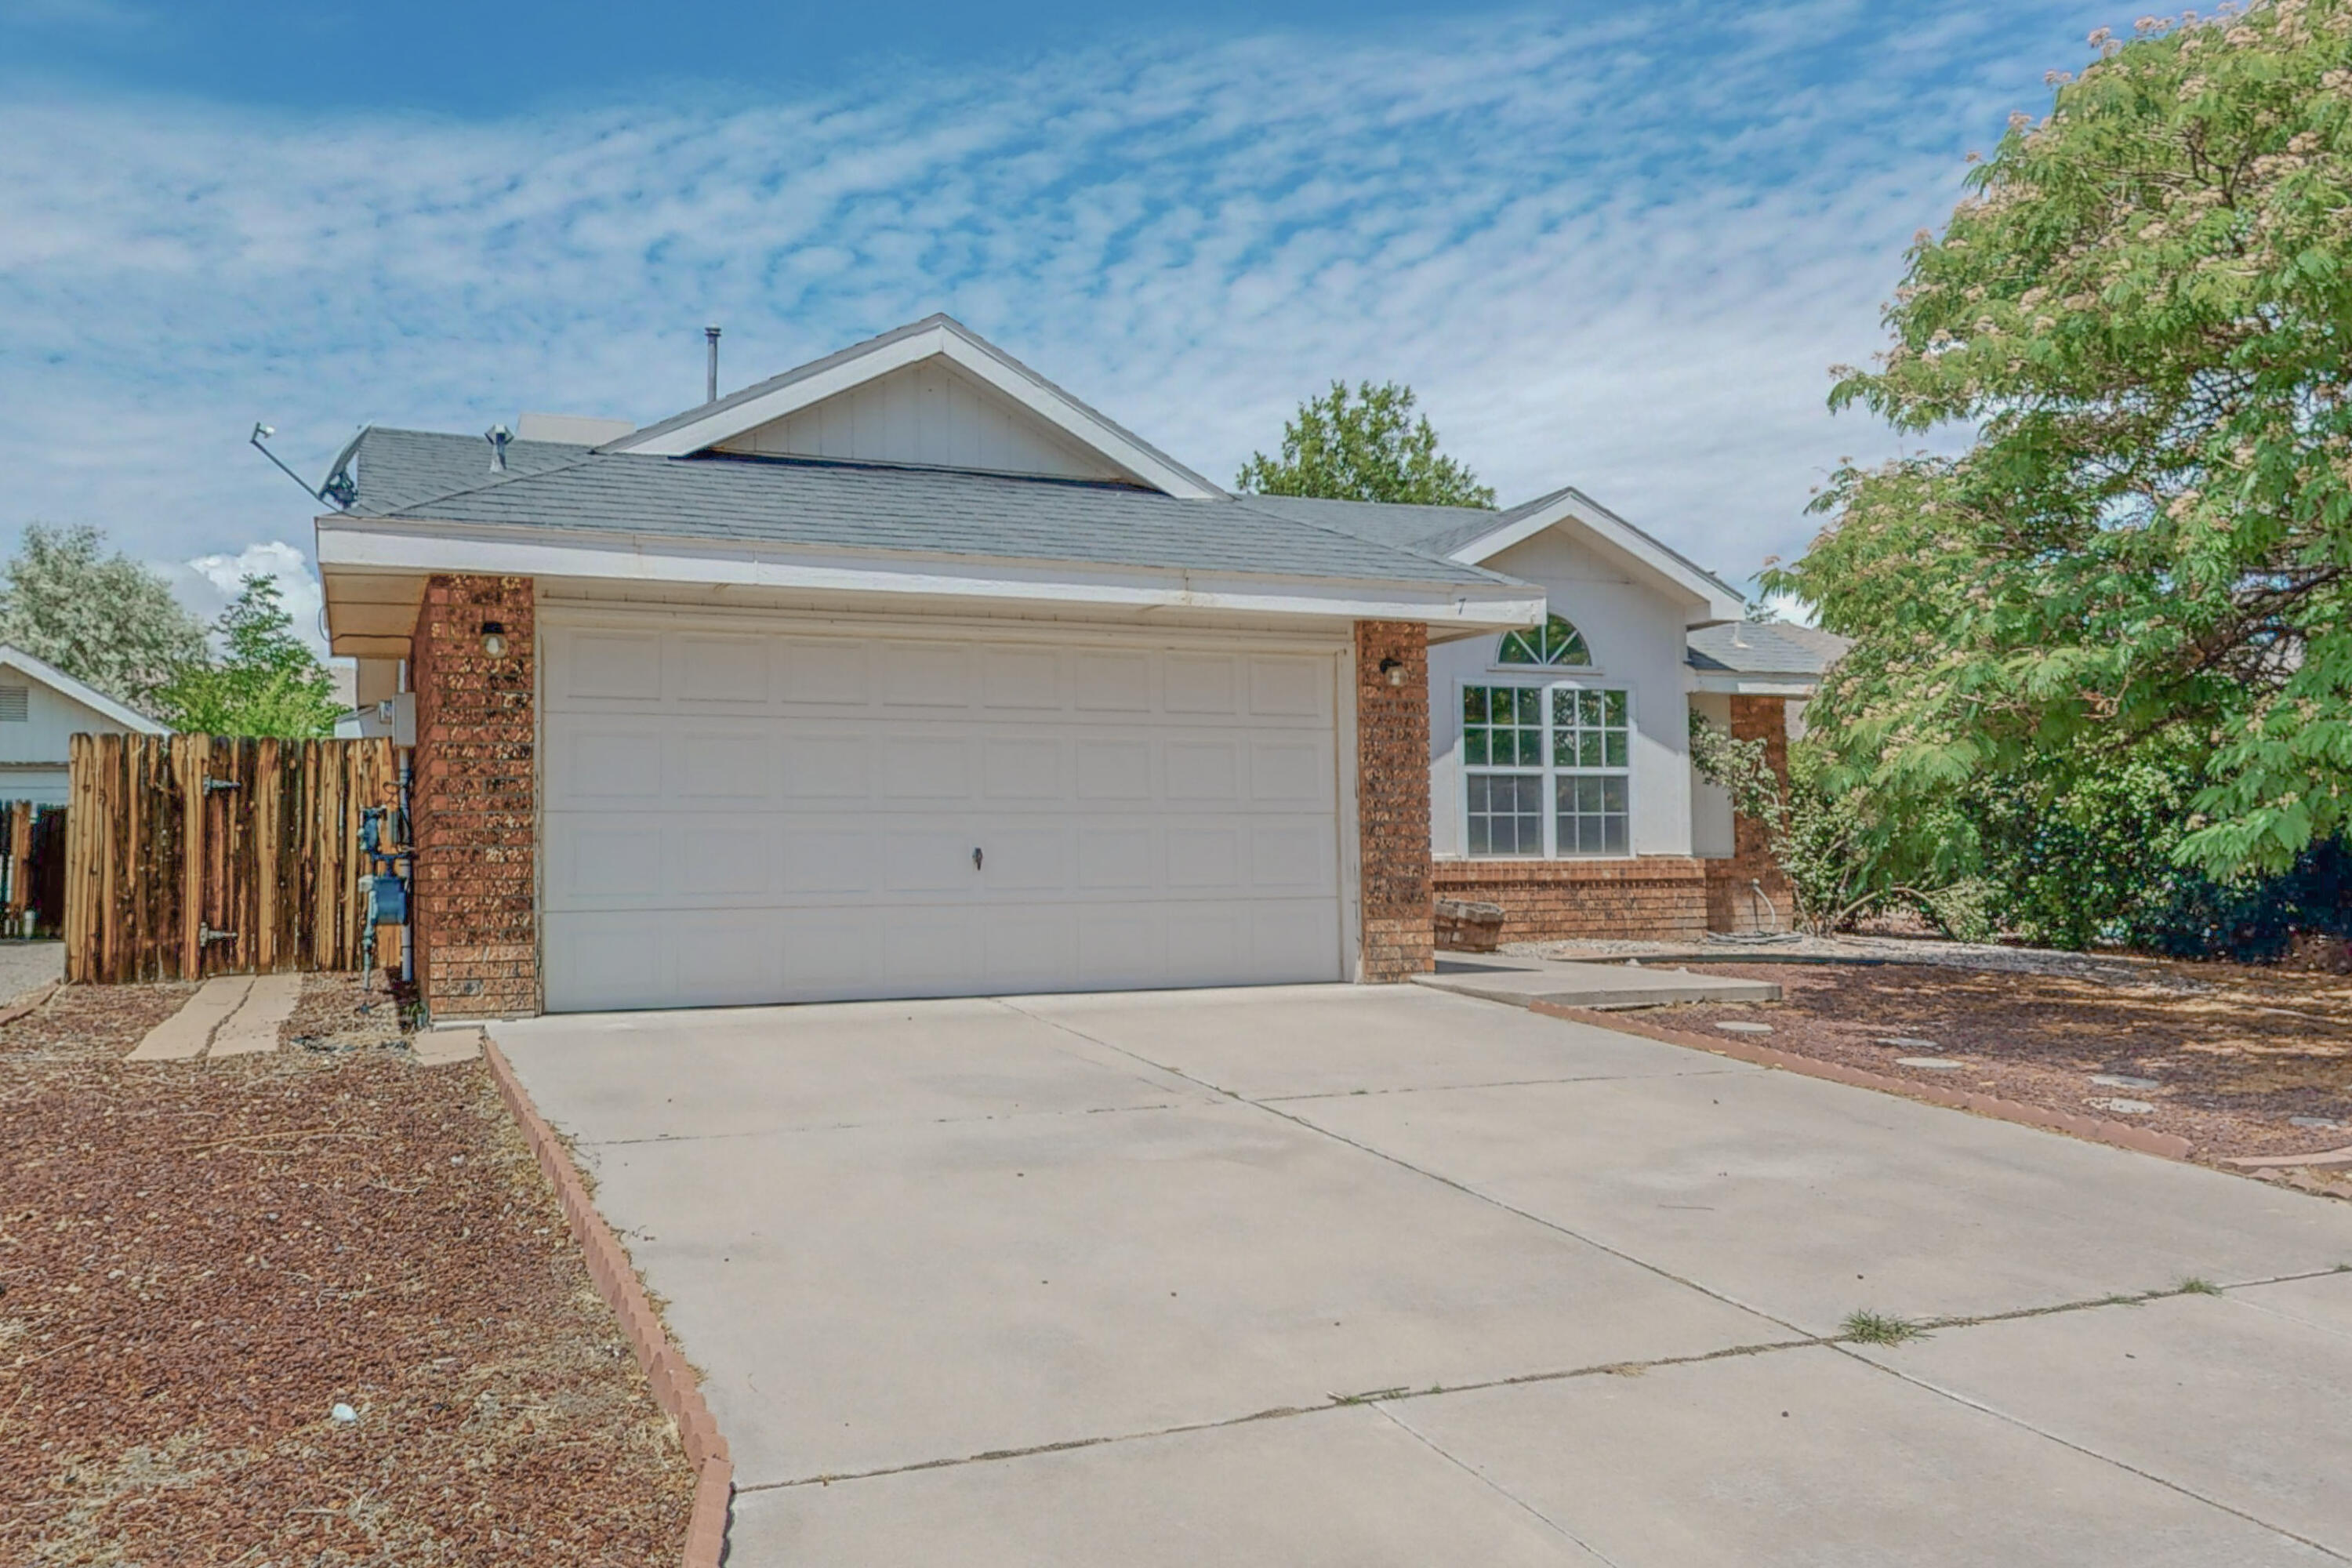 Great starter home, close to all schools, walking & biking trails!! This great Sivage Thomas home has an open floorplan, cathedral ceilings, arch accents, ledges, and fireplace. Kitchen has big window, lots of cabinets, counter tops and pantry. Master has walking closet and garden tub in master bathroom. Nice size backyard with dog run and covered patio. A must see! Call for your private showing!!